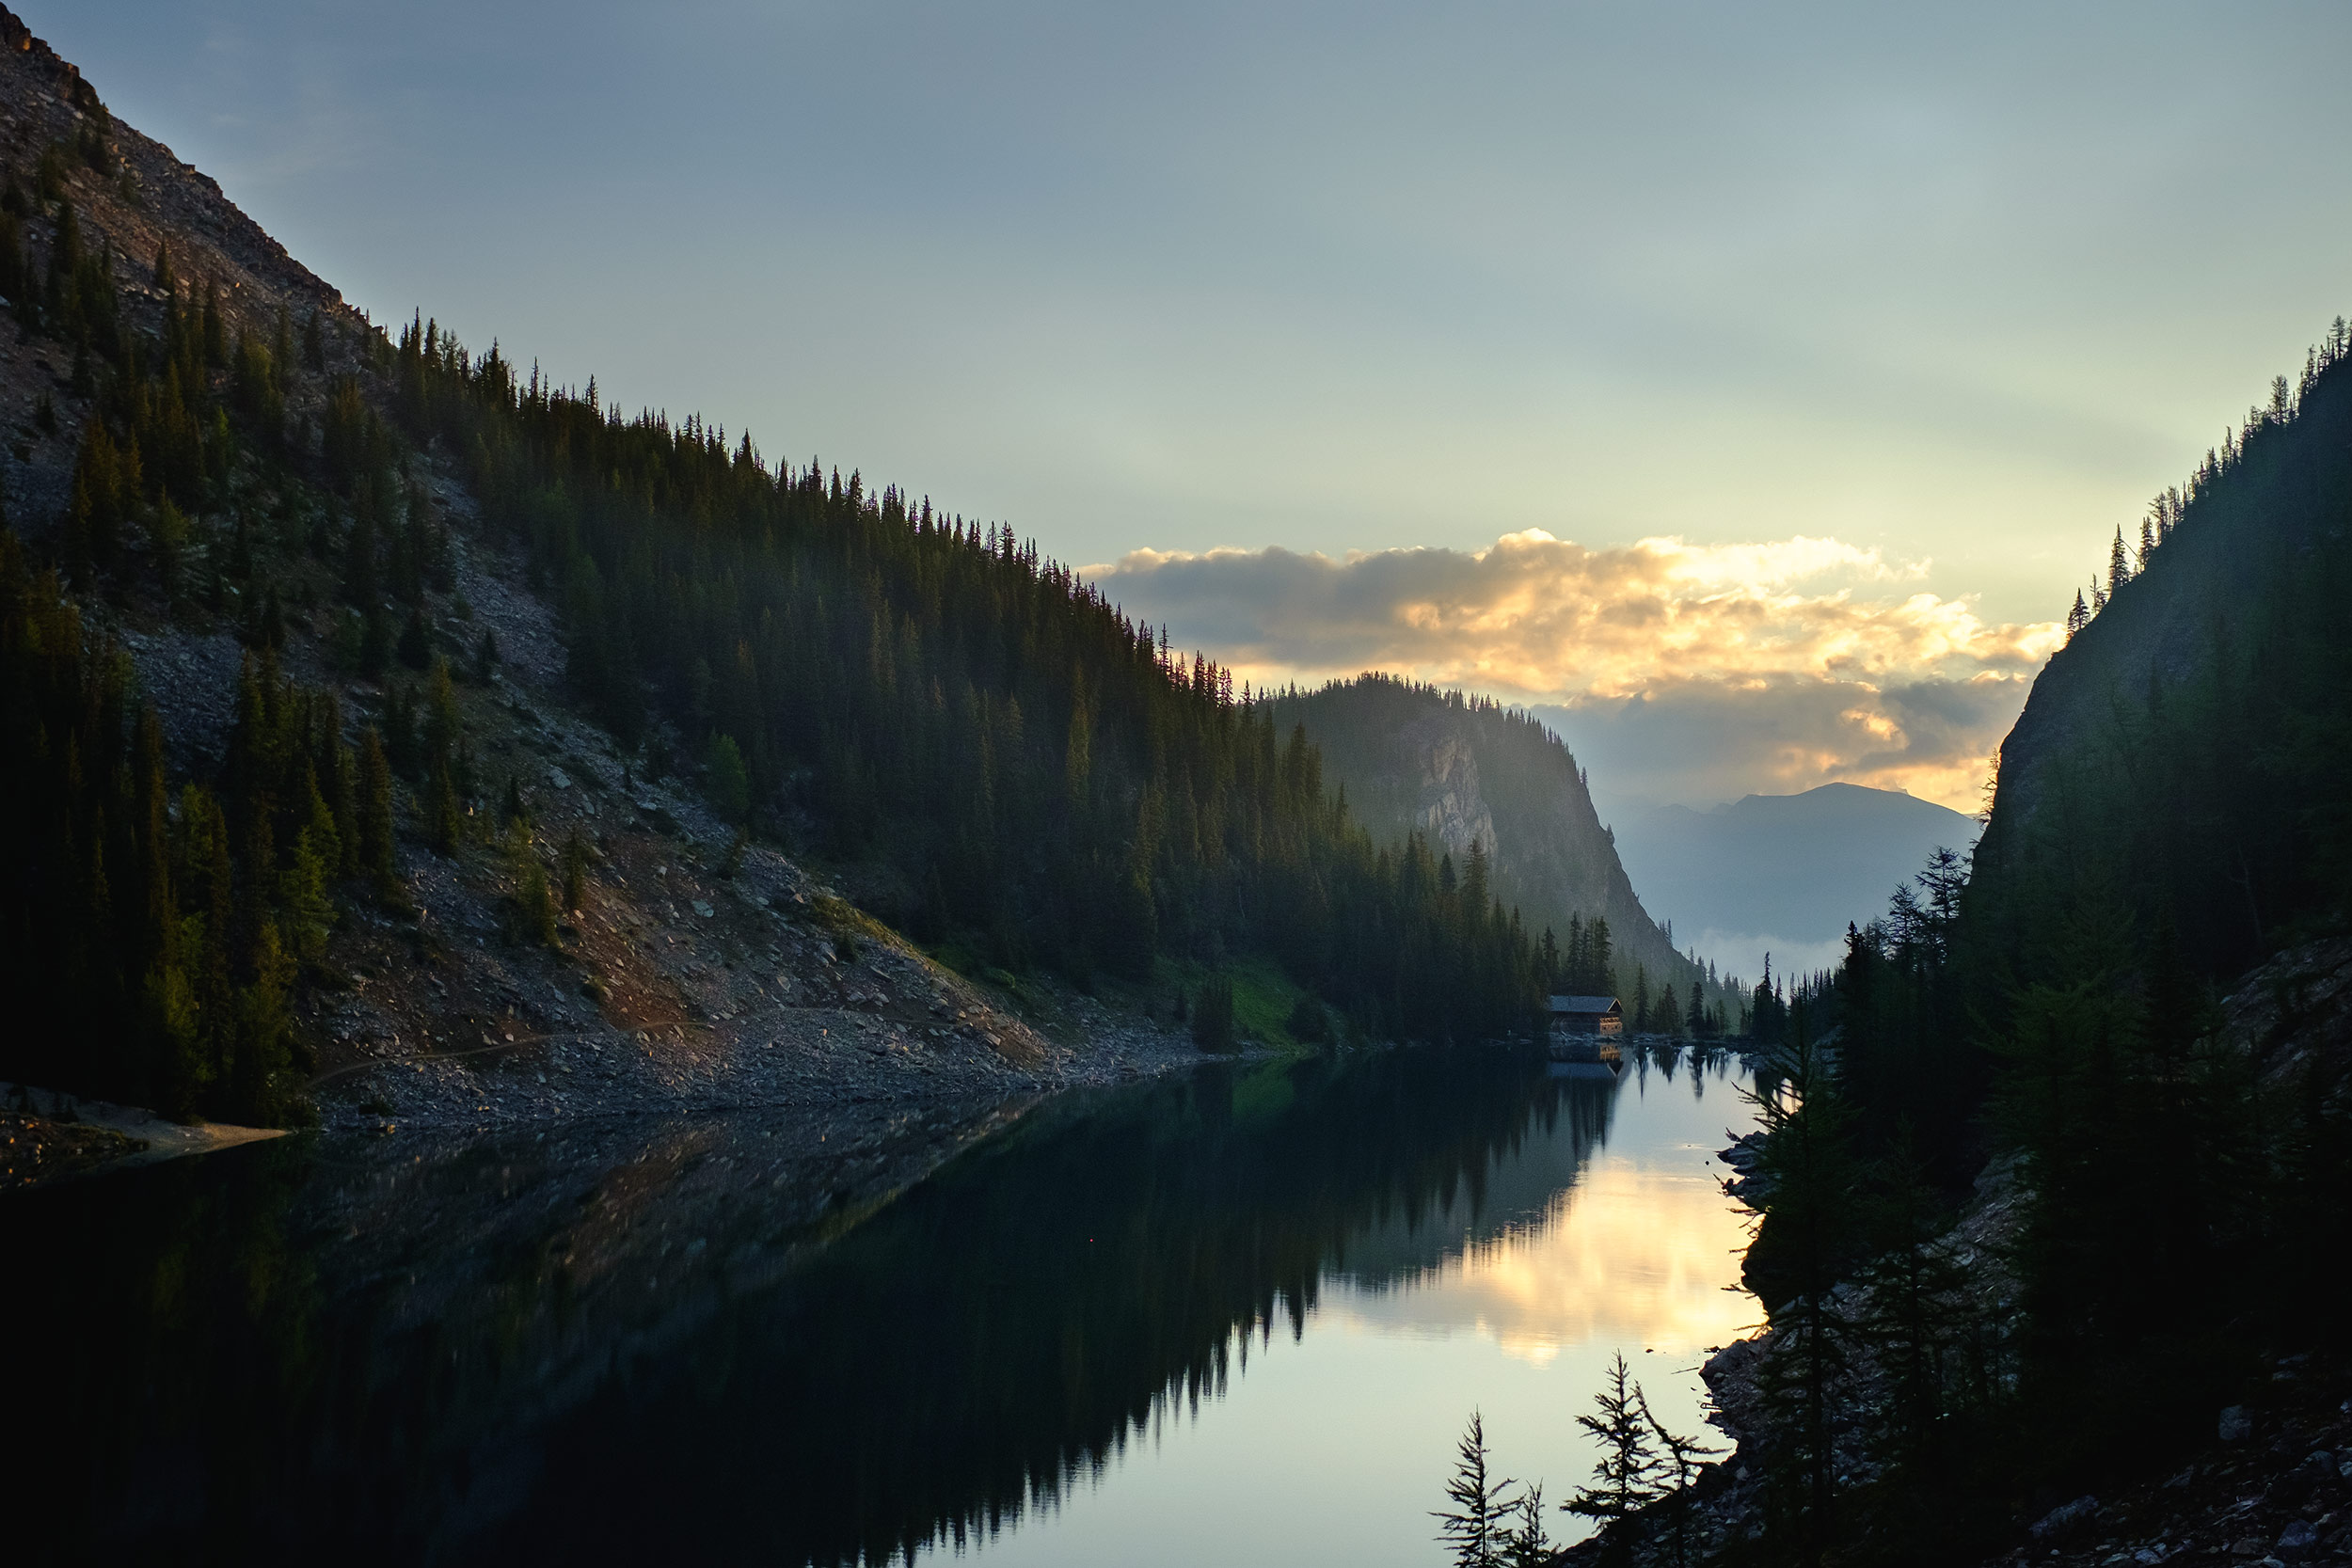 travel_cabin_lake_banff_jasper_outdoors-7972